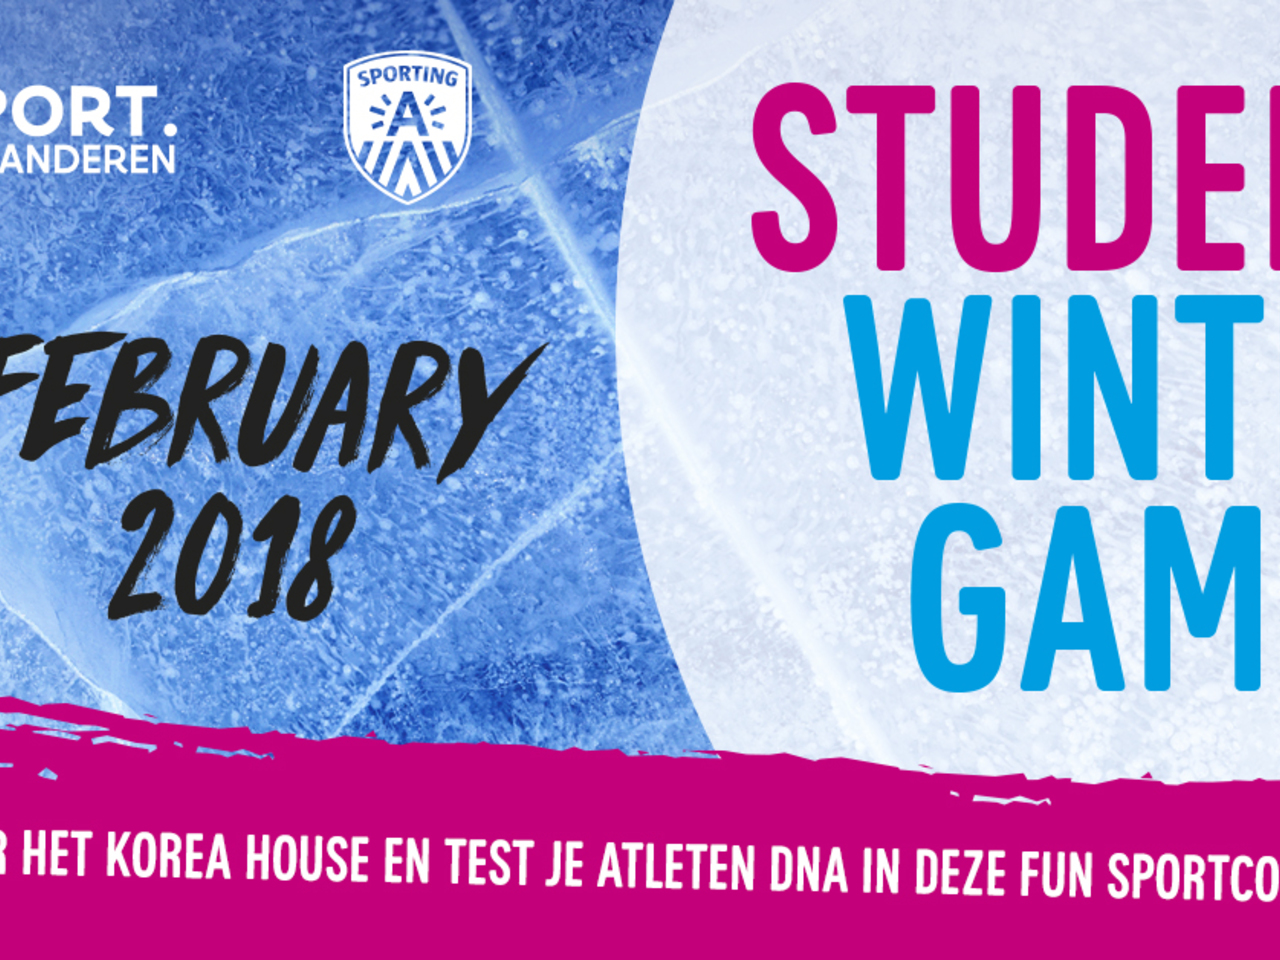 http://www.koreahouse.be/event/student-winter-games/